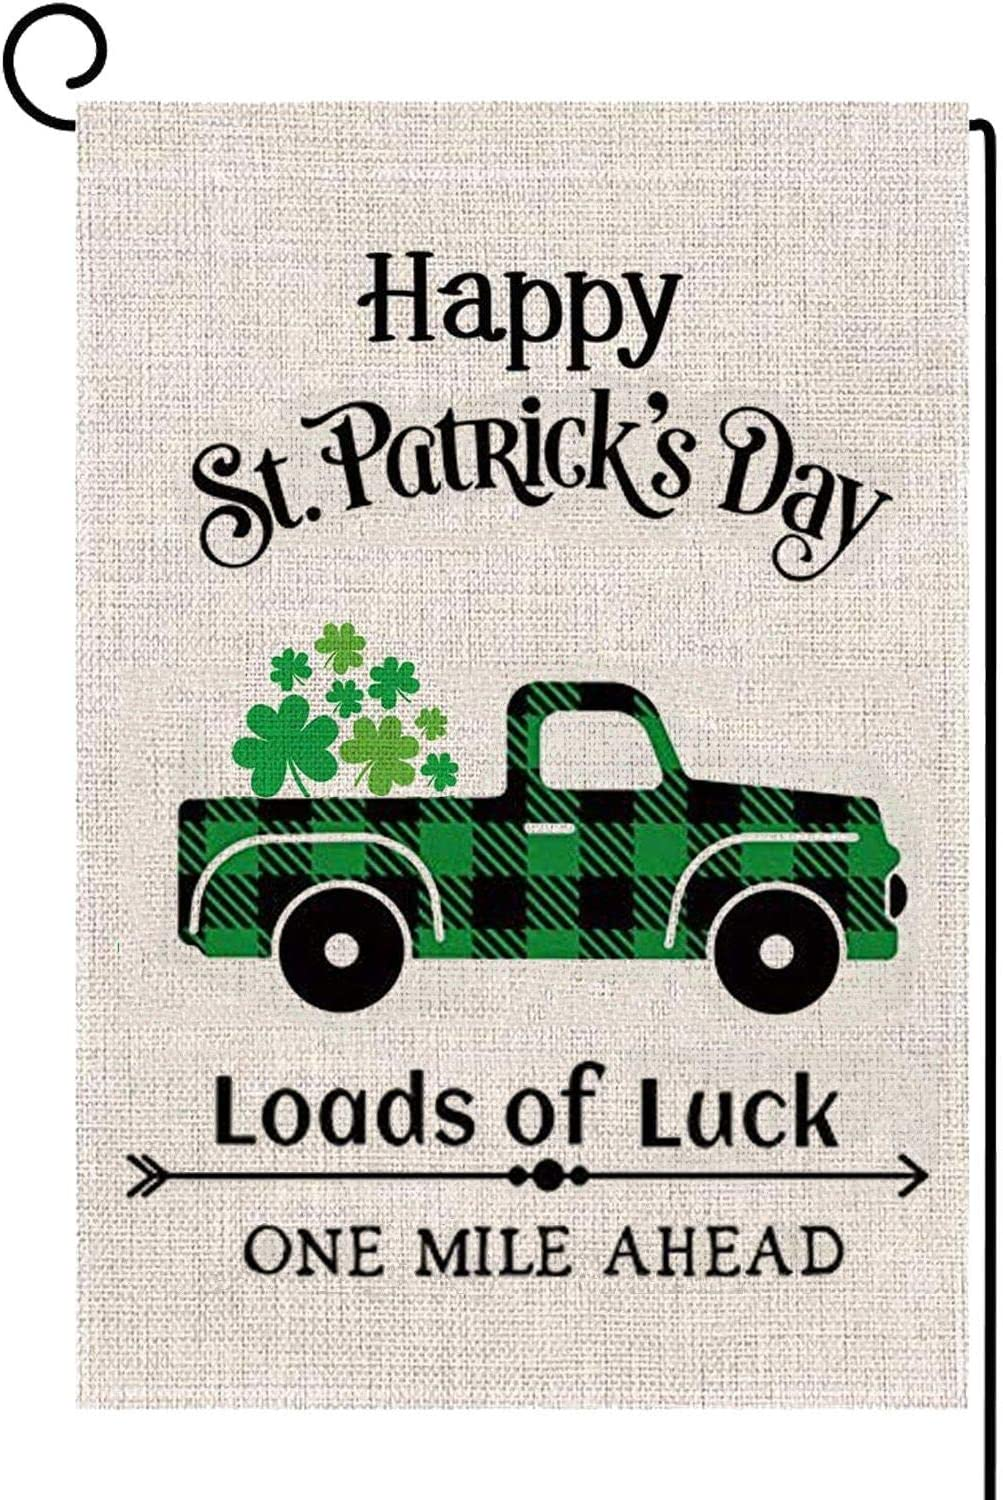 Alpurple St. Patrick's Day Plaid Garden Flag-12.5 x 18 Inch Double-Sided Printed Lucky Truck Spring Yard Burlap Banner for Home & Outdoor Decoration